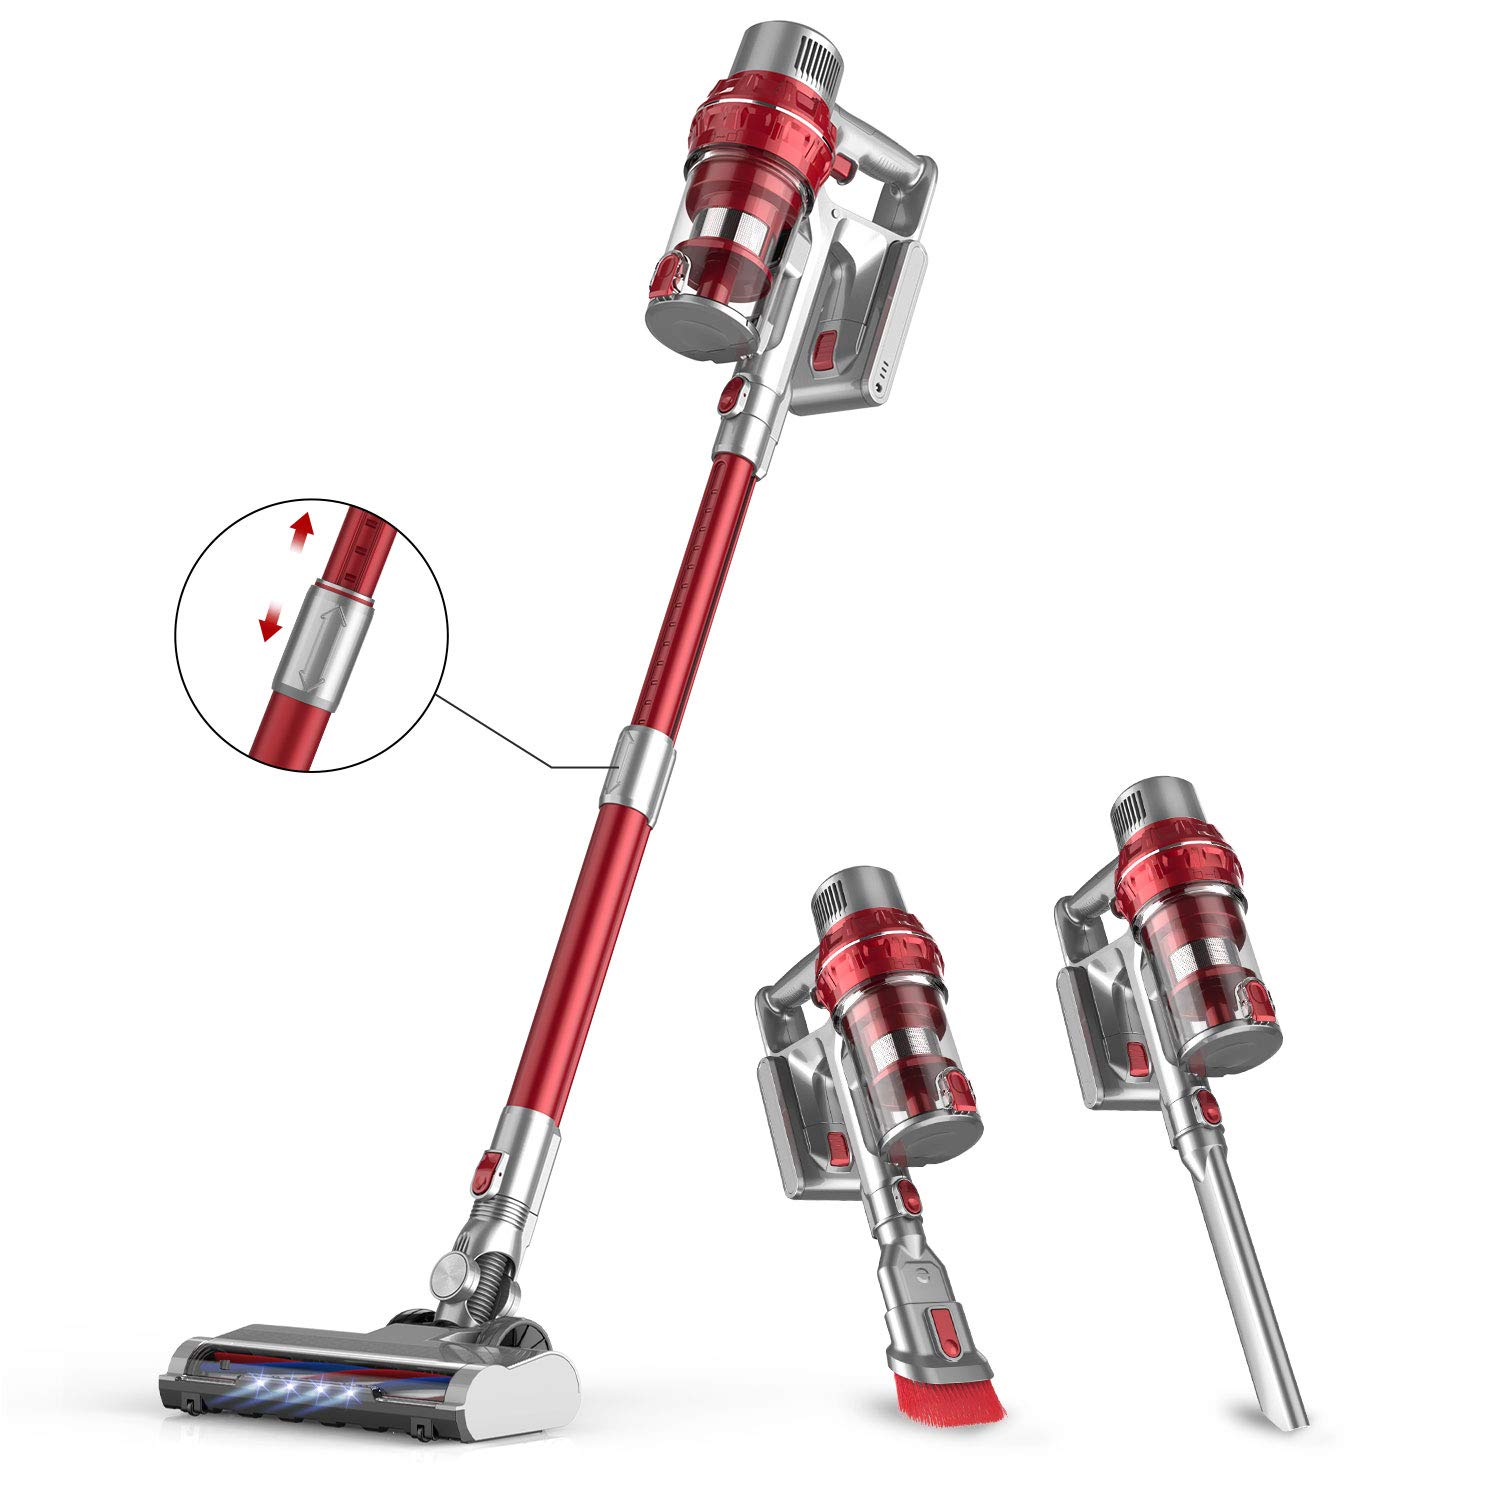 BuTure Cordless Vacuum Cleaner